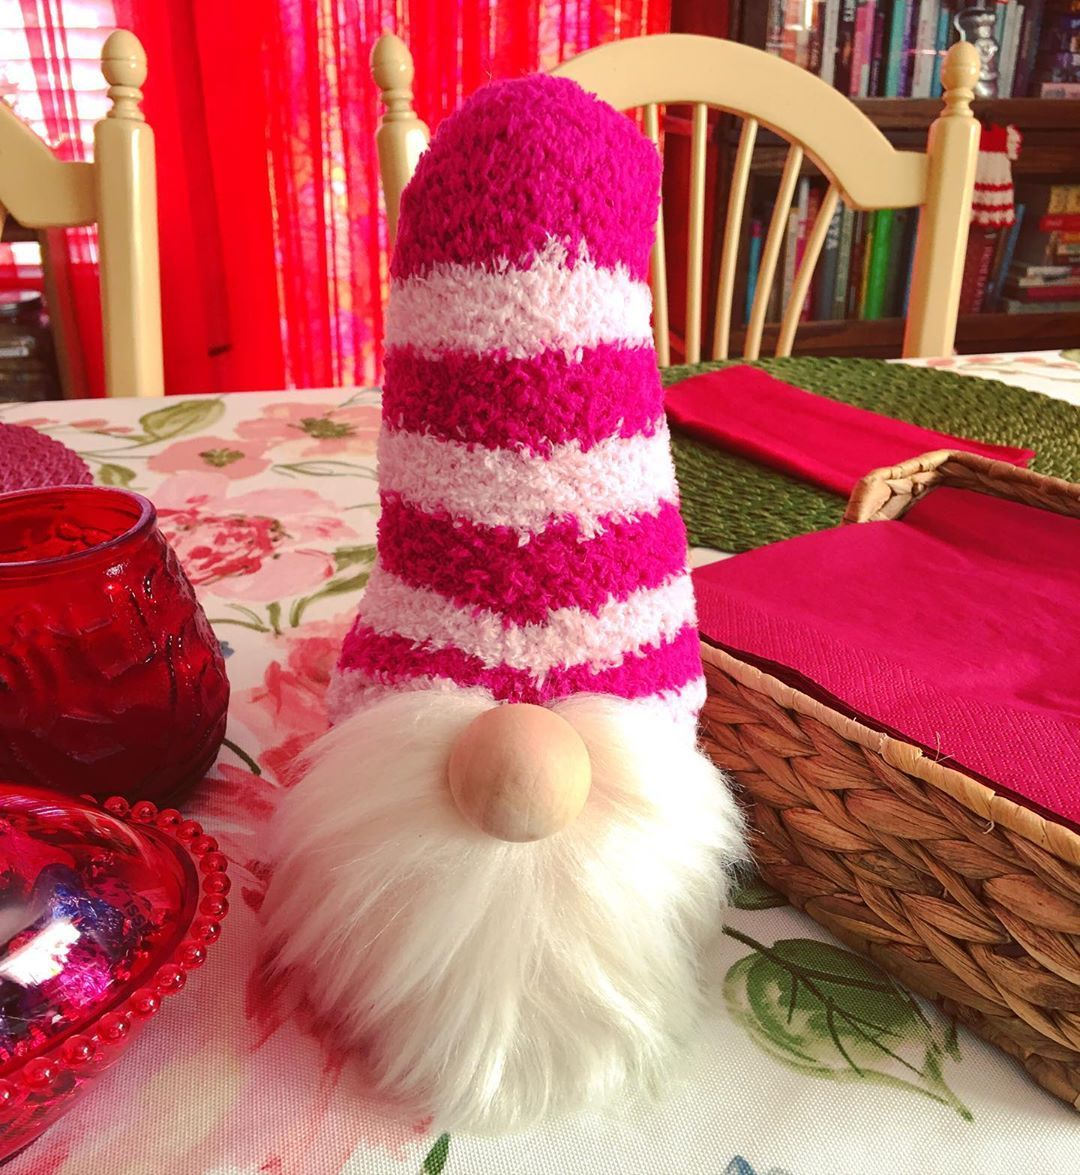 Table gnome I made yesterday - Table gnome I made yesterday ?? #loveysgnomes #gnomes #sockgnomes #loveyscrafts #craft #valentines #funcraft #supereasy #craftmom #tabledecoration #tablegnome #socks #stuffing #rice #woodennose #blush #dodads #myway #makeityourown #fauxfur #handmade #madebyhand #handmade #loveysgnomes #gnomesofinstagram     You are in the right place about cheap Crafts iDeas      Here we offer you the most beautiful pictures about the  waste material Crafts iDeas  you are looking